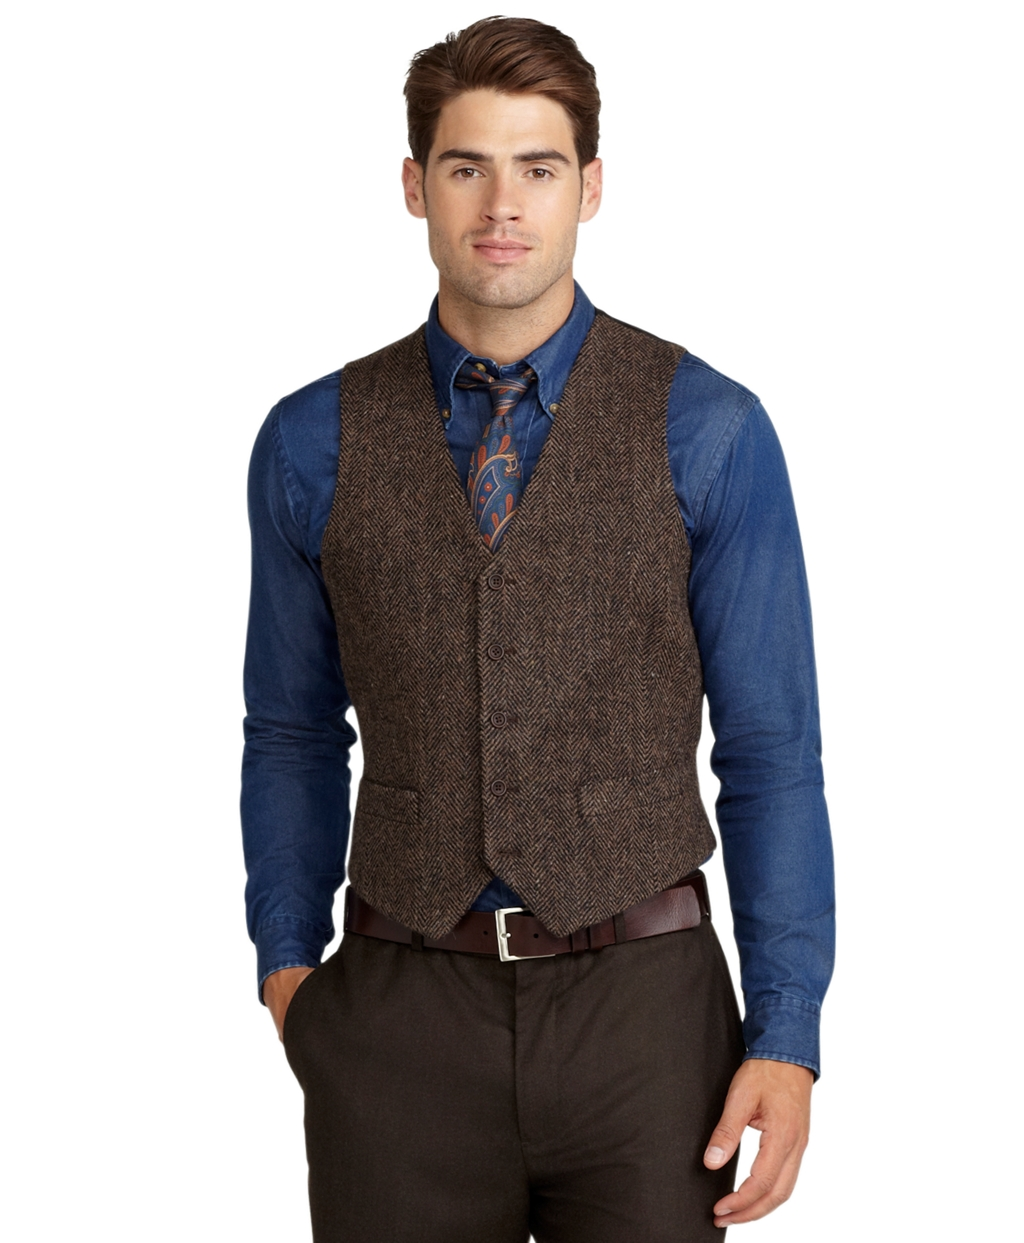 Men s Vest. Layer up with a men's vest! Check out Macy's selection of vests from top brands—think casual, work-ready, special occasion and cold-weather styles.